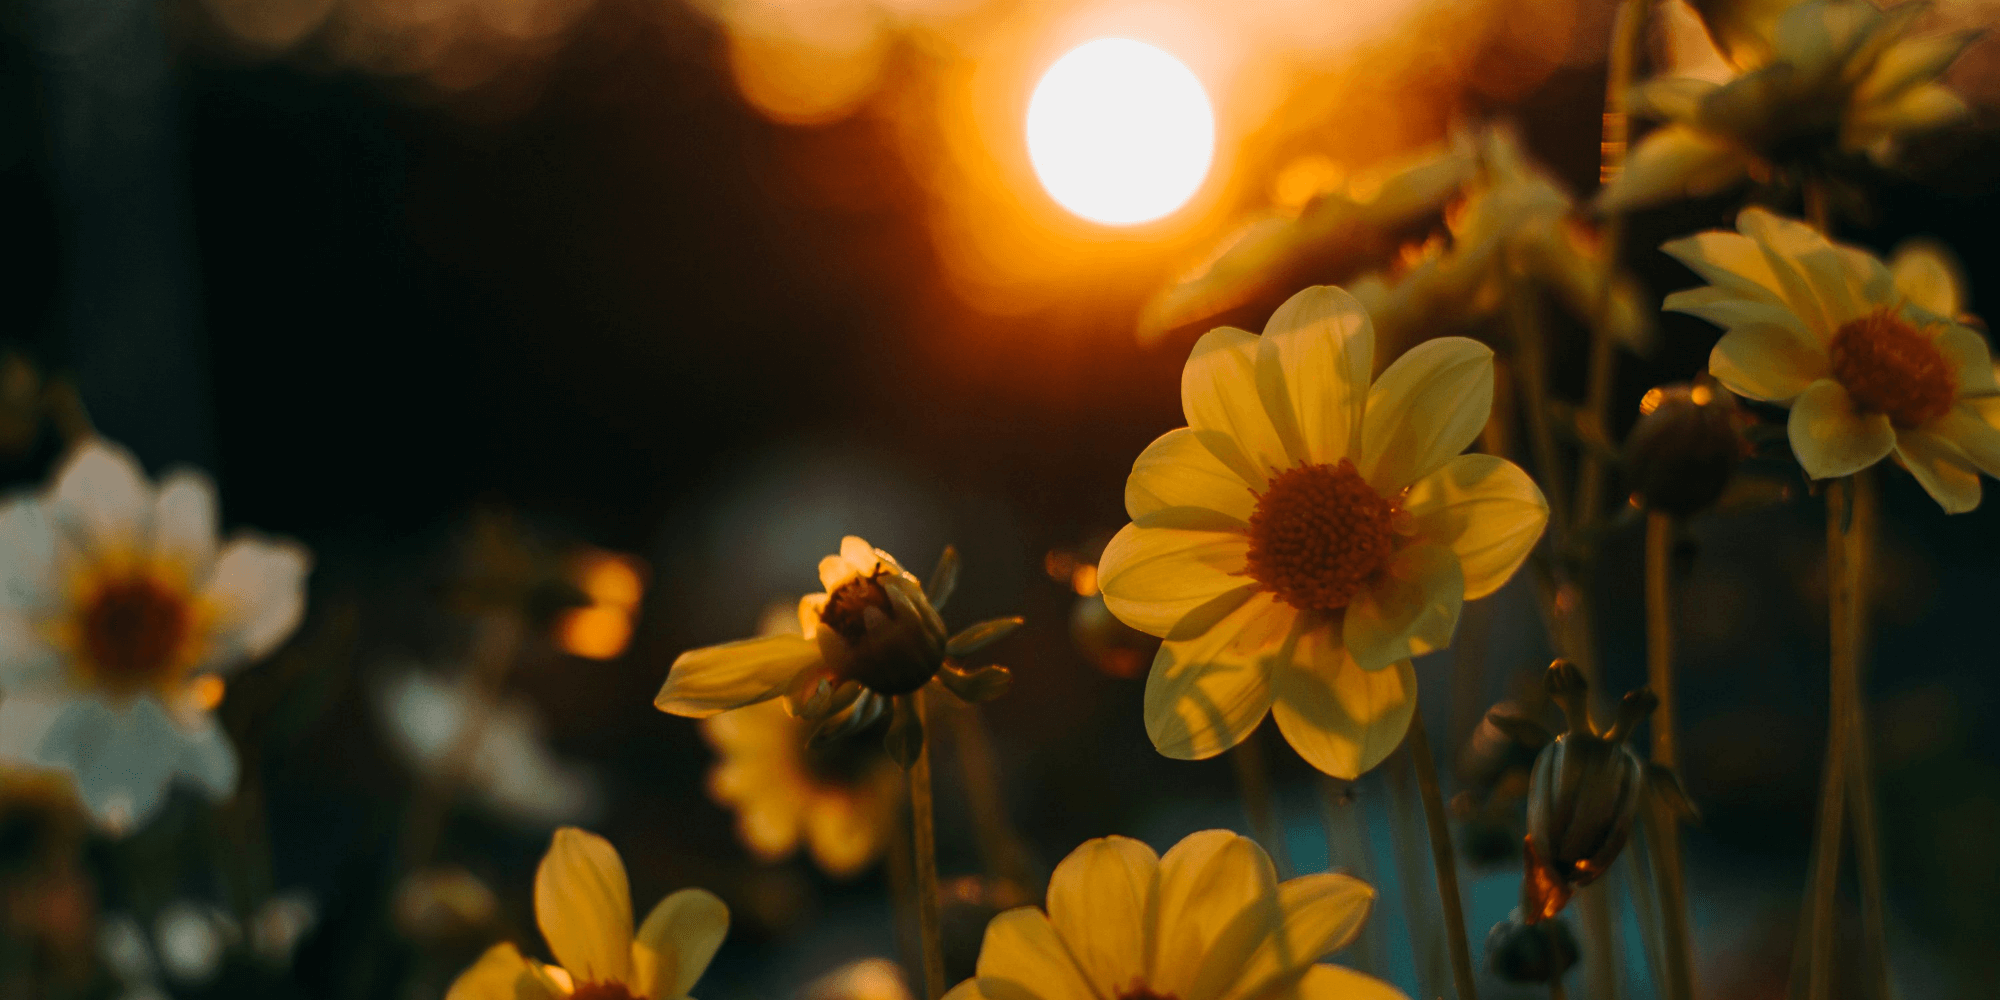 Daffodils in the sunset